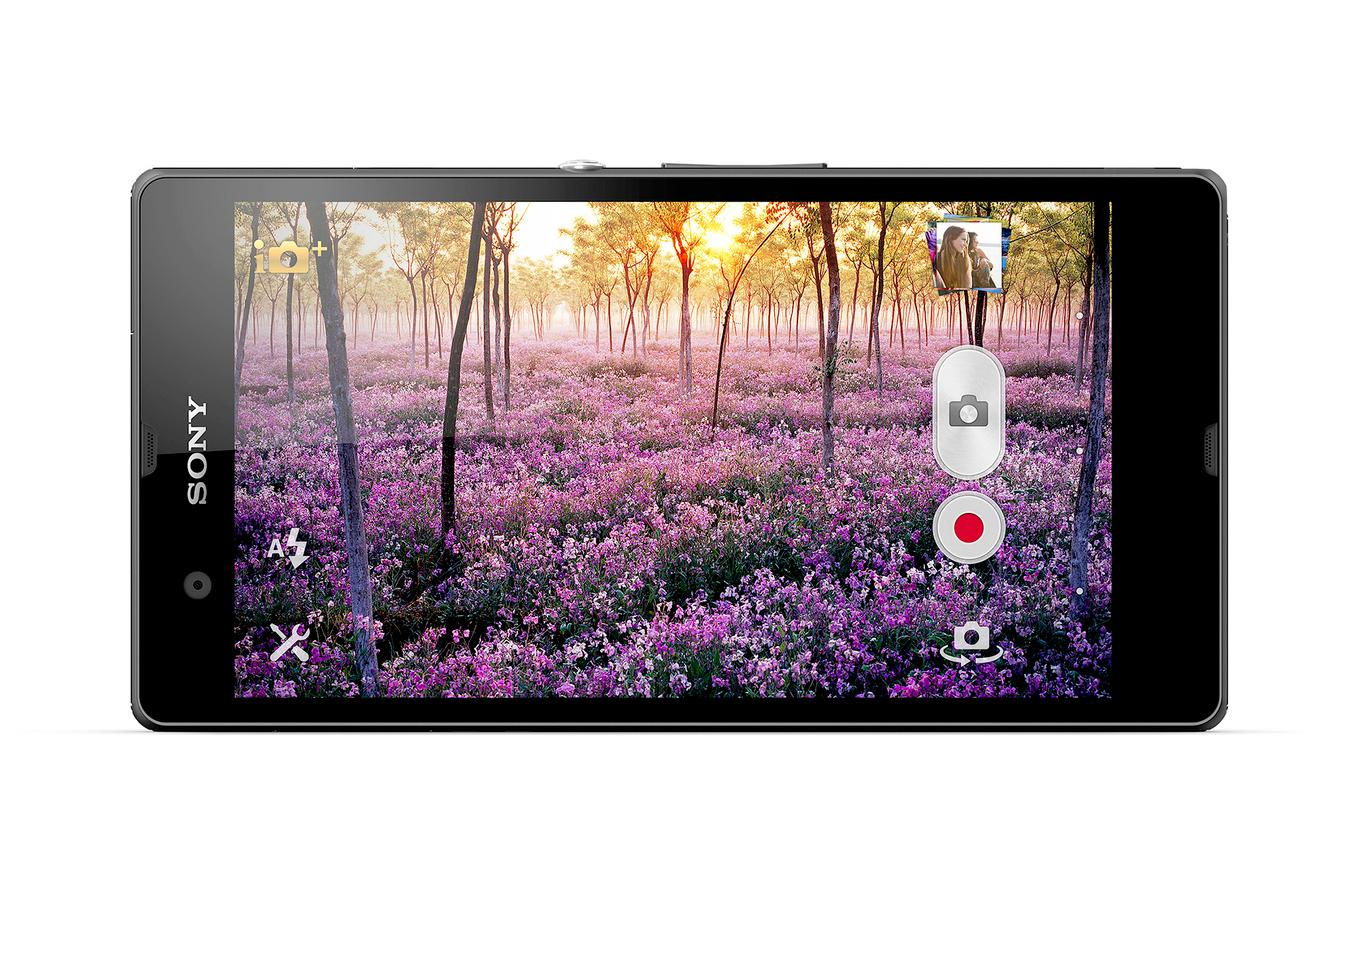 The Xperia Z's rear camera shoots HDR video